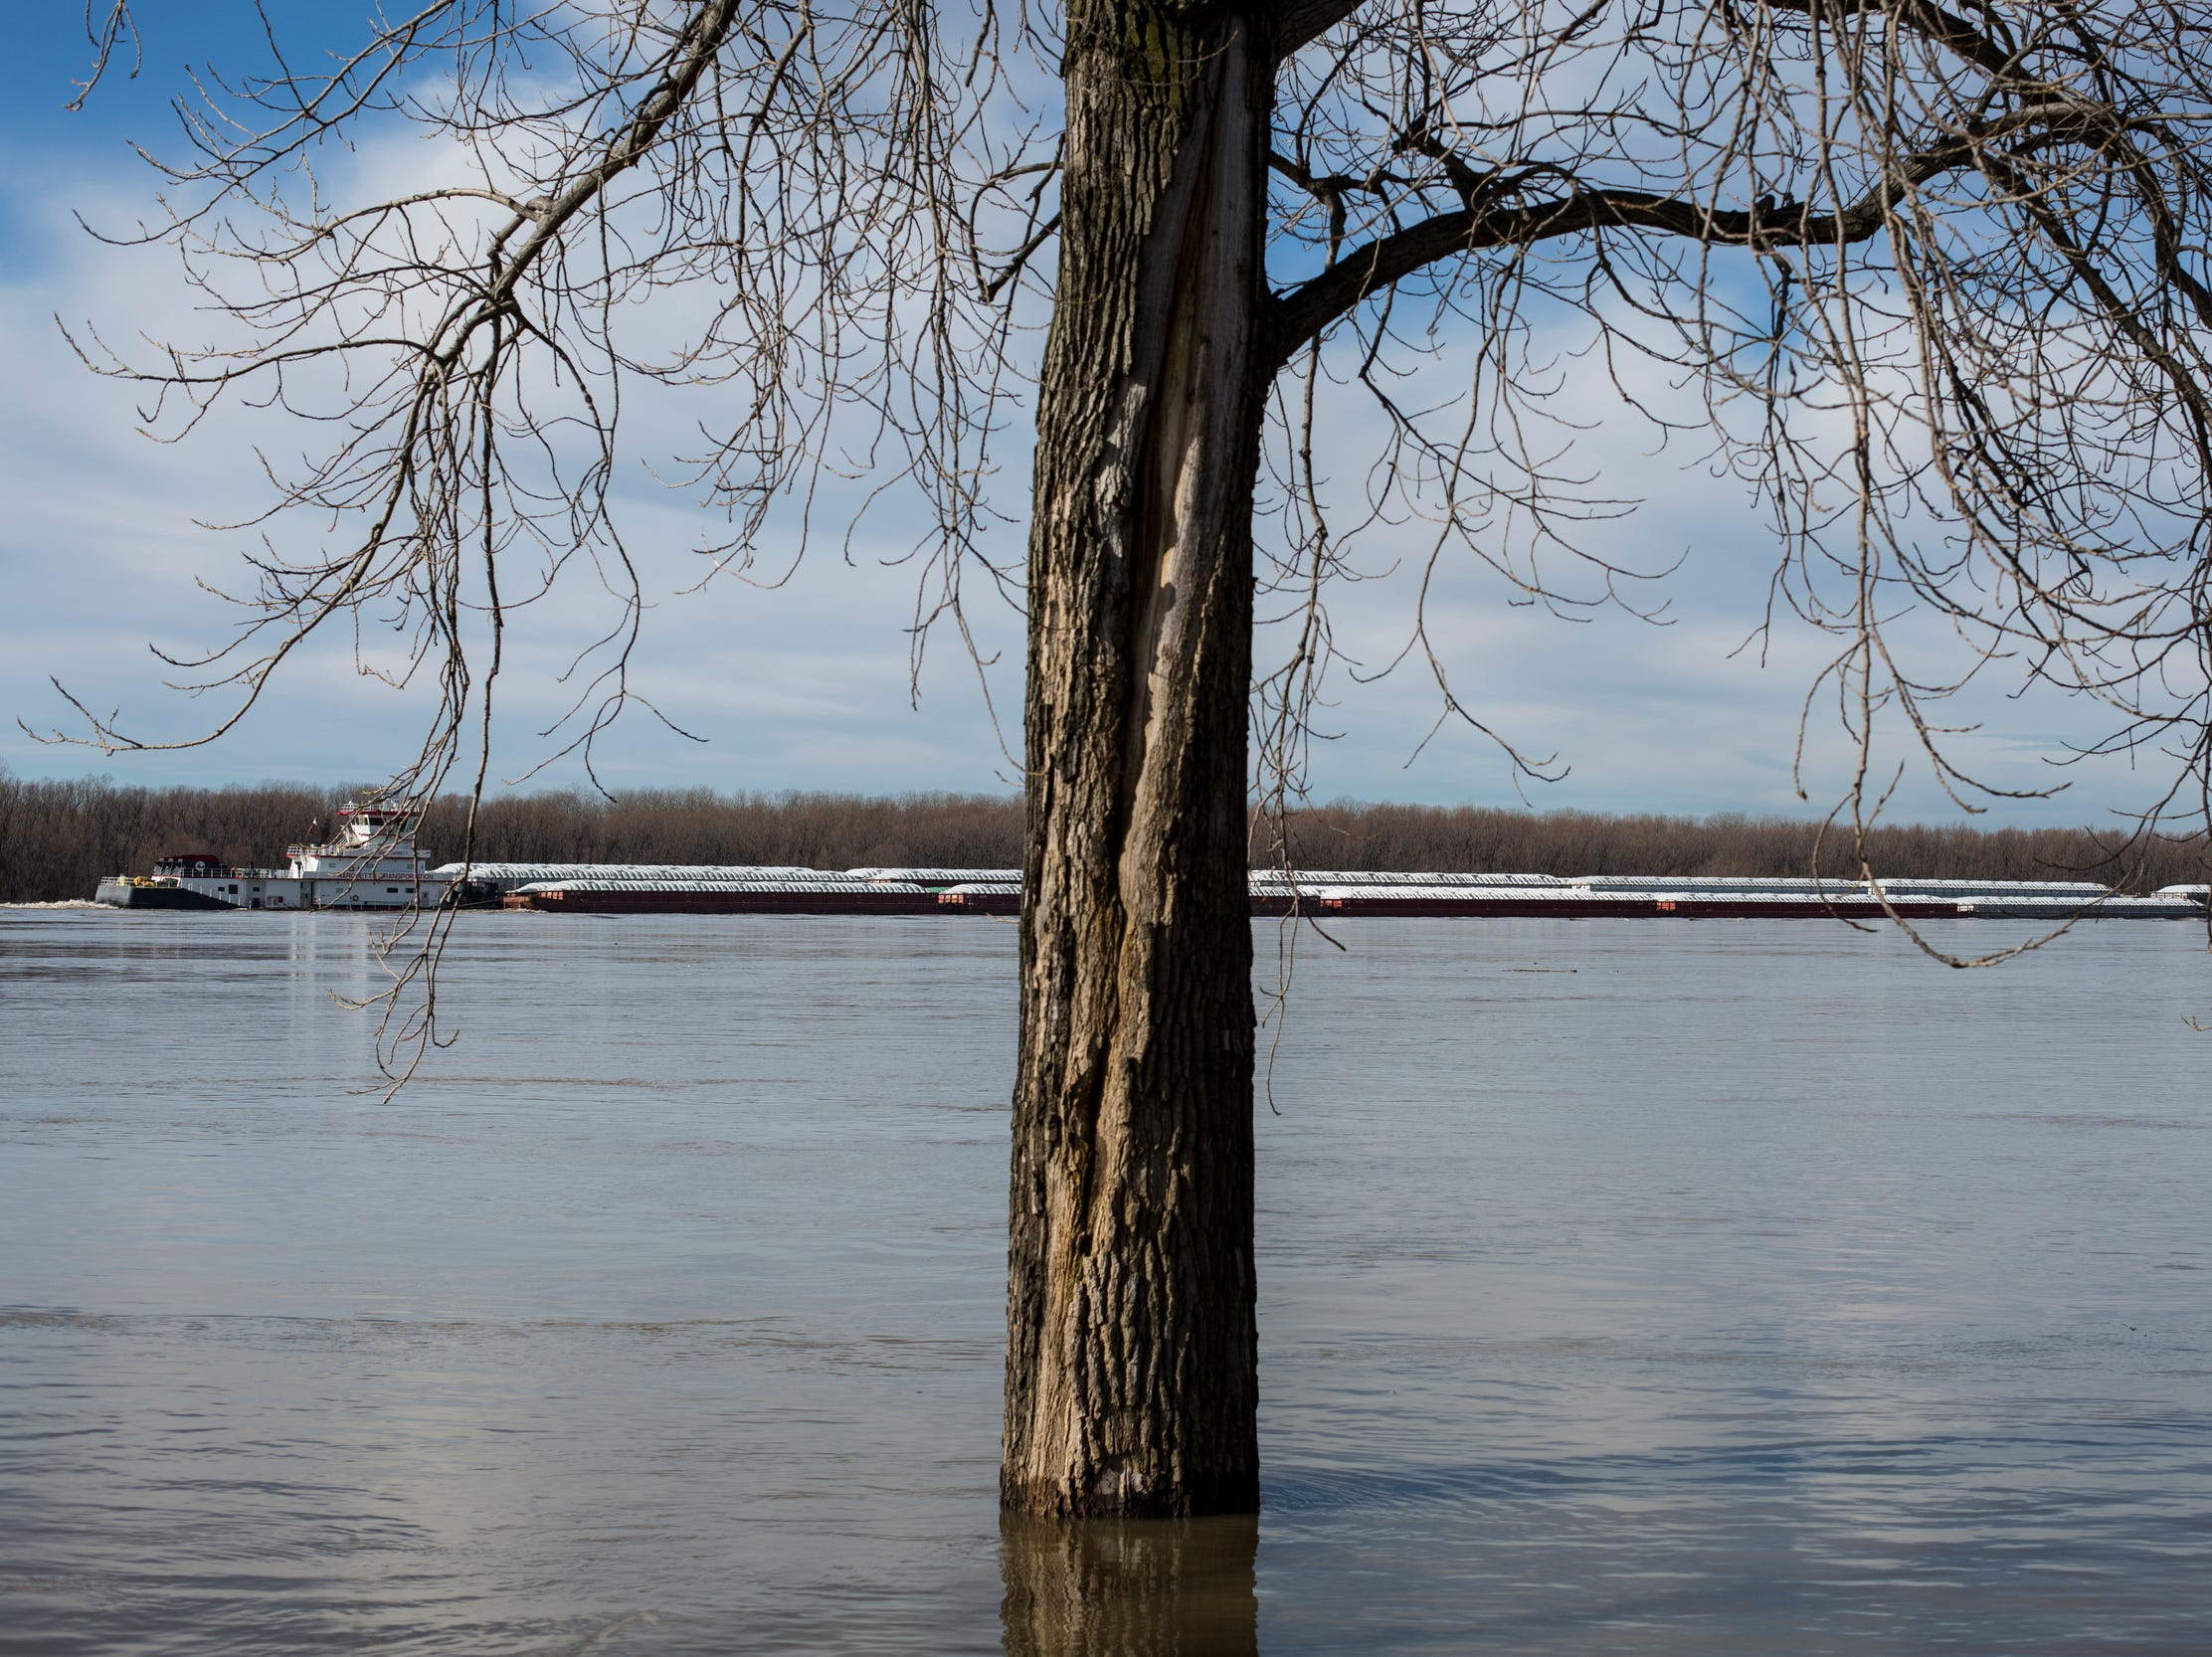 January 06 2019 - A towboat makes its way up the swollen Mississippi River on Sunday afternoon. The Mississippi River is currently at 29 feet and is expected to crest at 32 feet later this week.